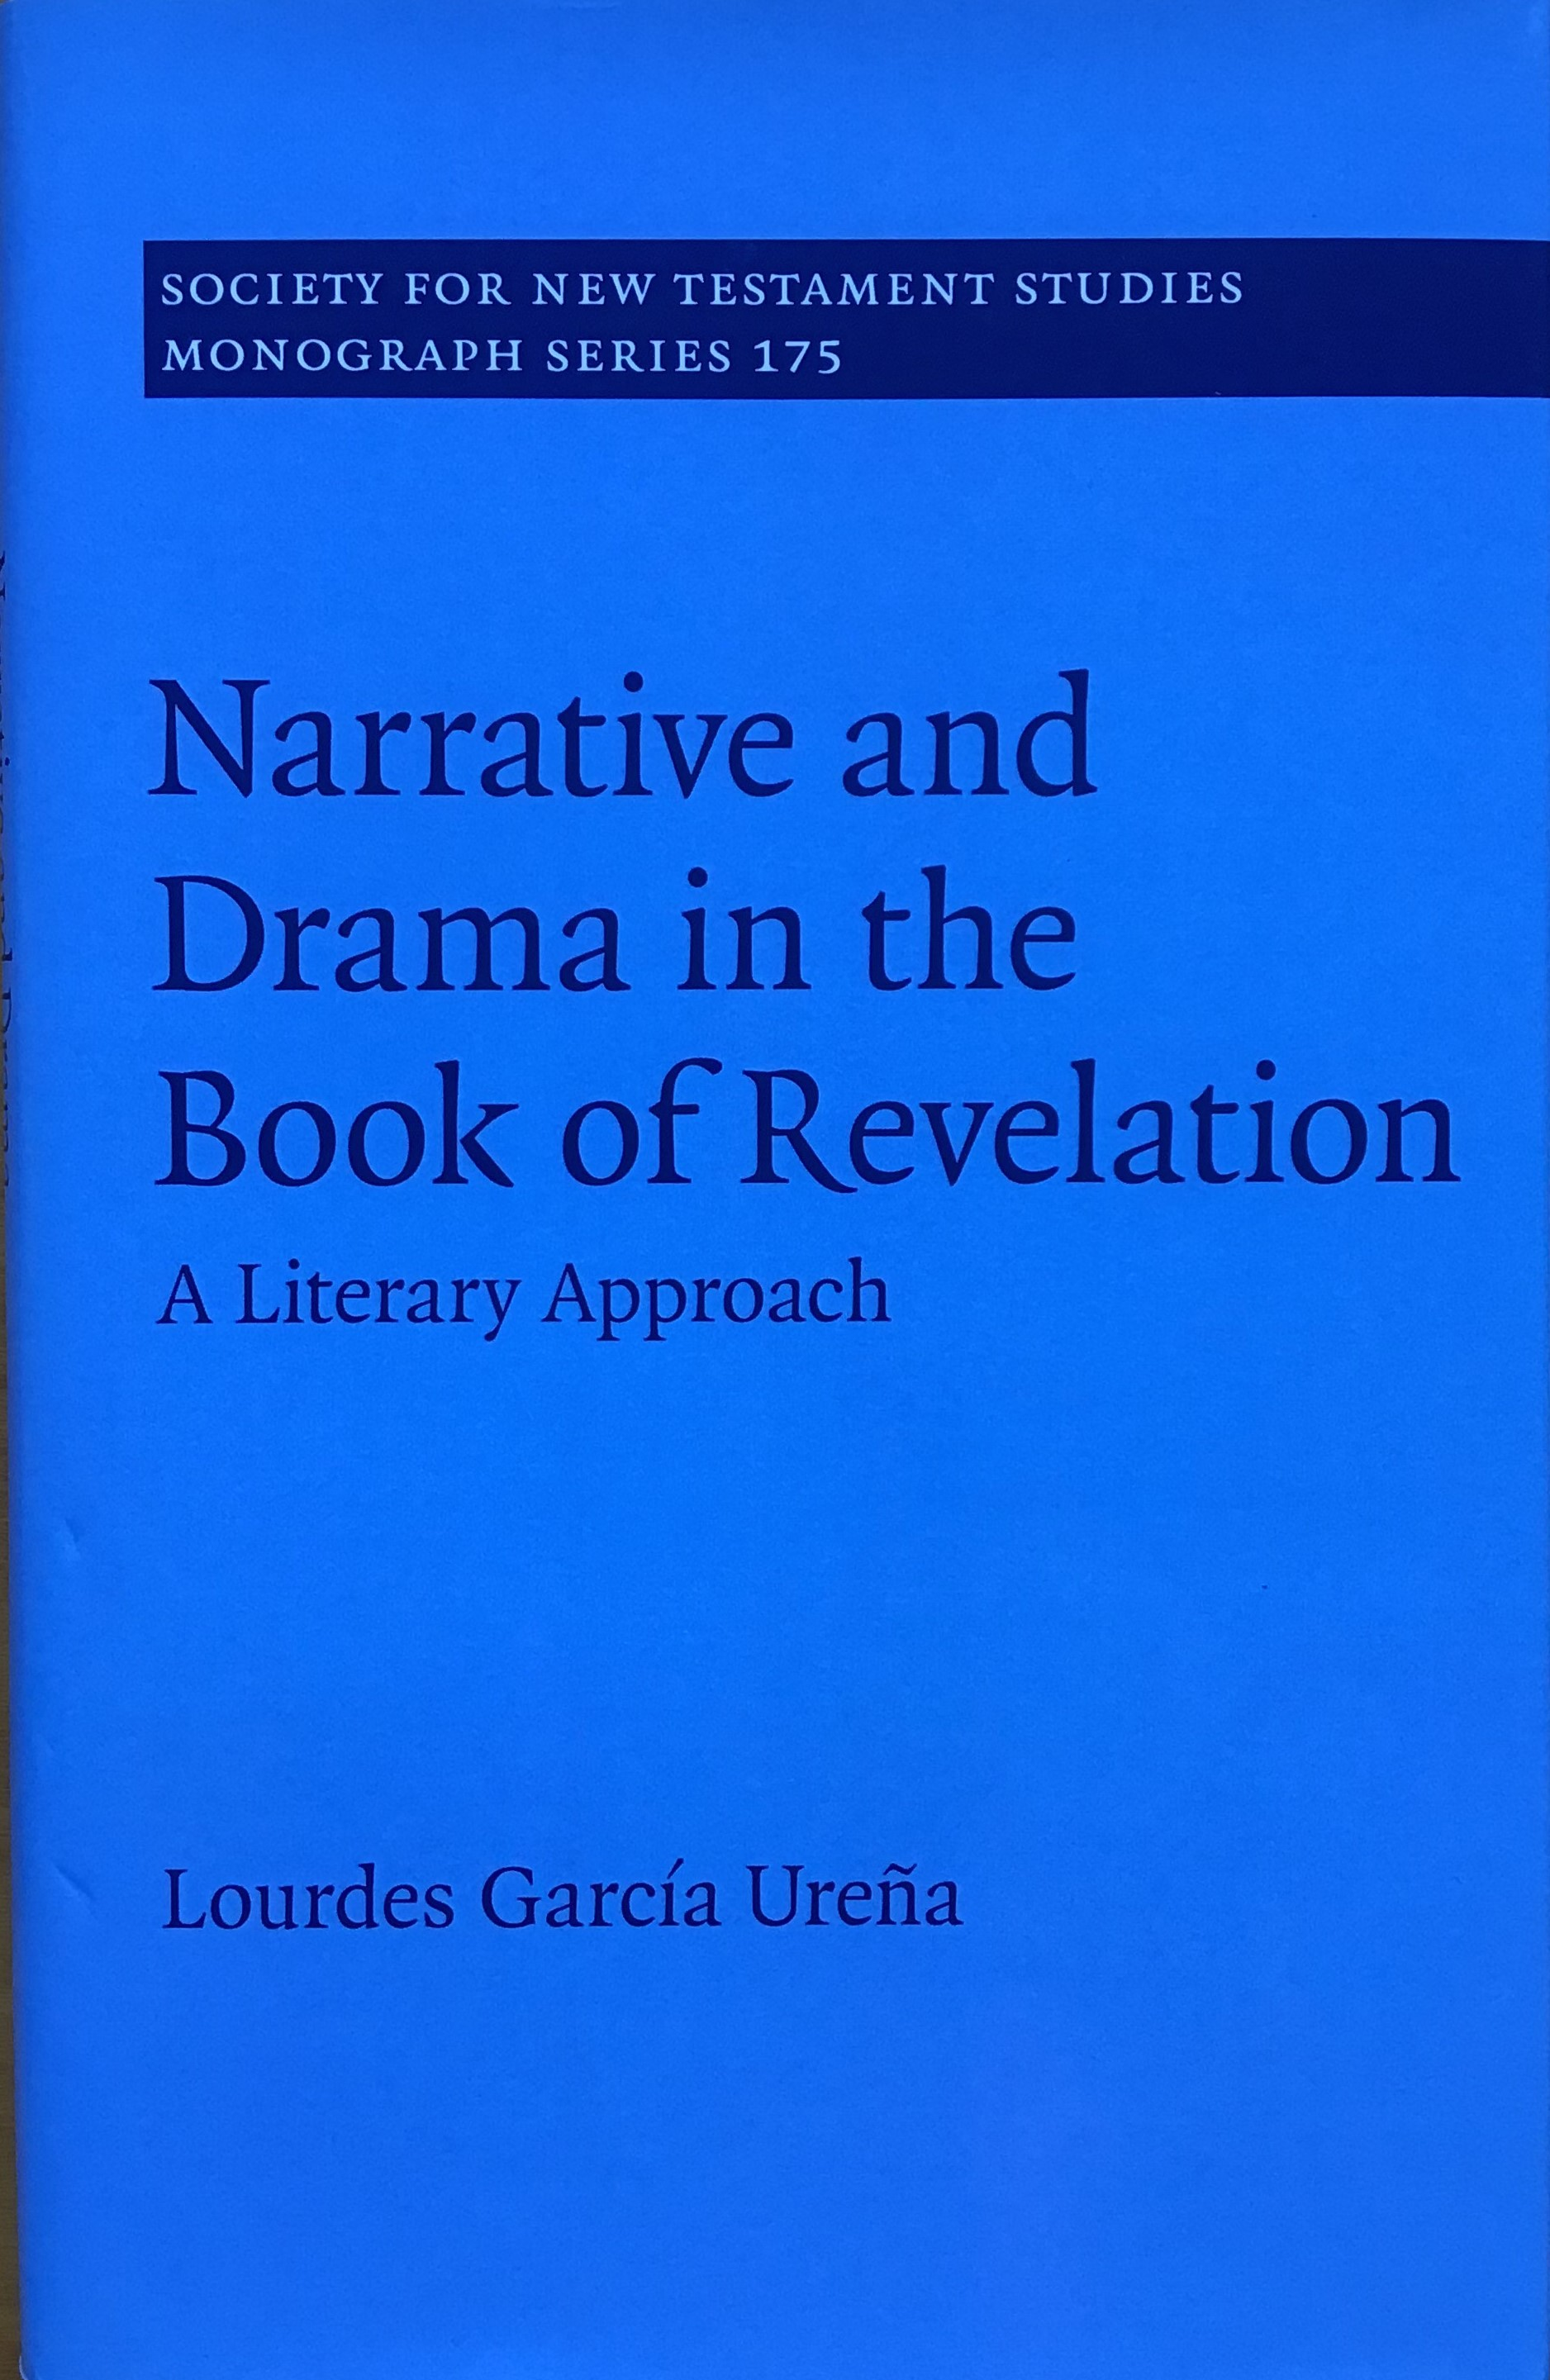 Narrative and Drama in the Book of Revelation. A Literary Approach